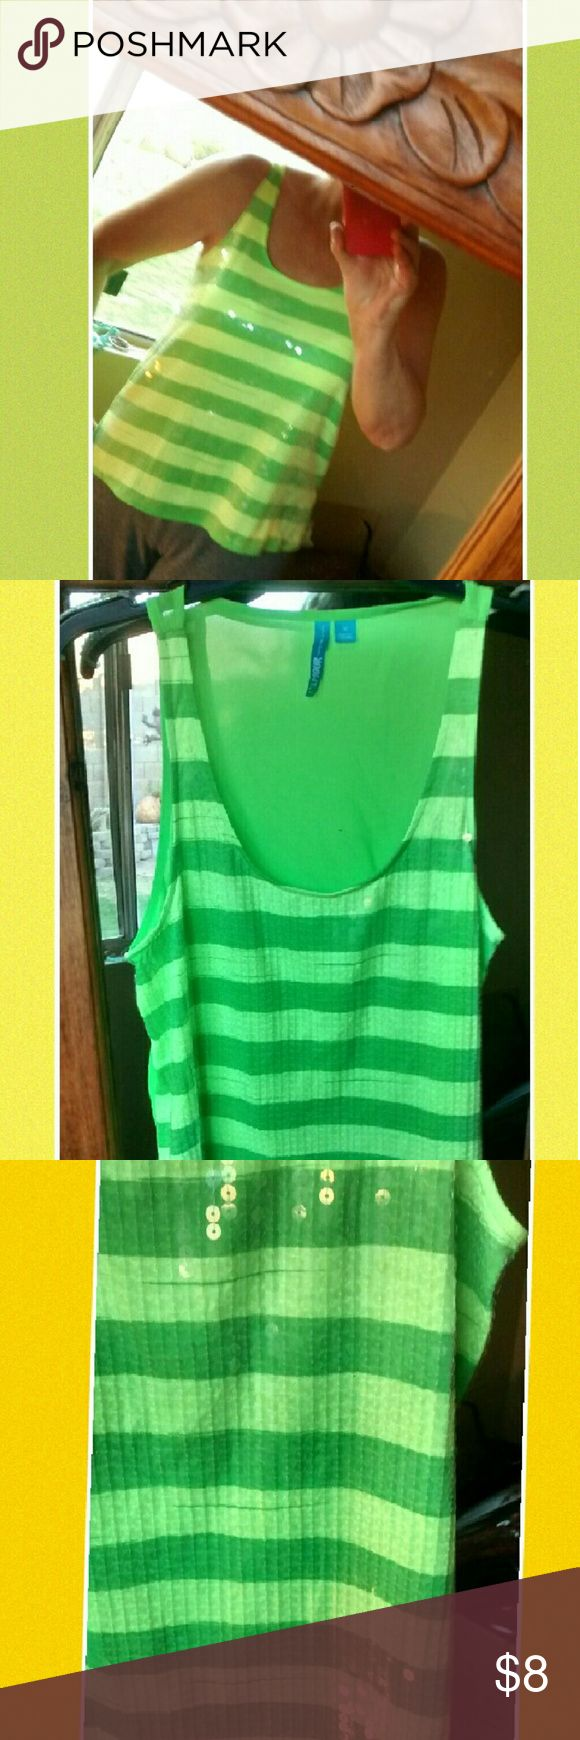 Bright Green striped tank Bright green striped green tank with sequence. Back of shirt is shear. In excellent used condition. Tops Tank Tops